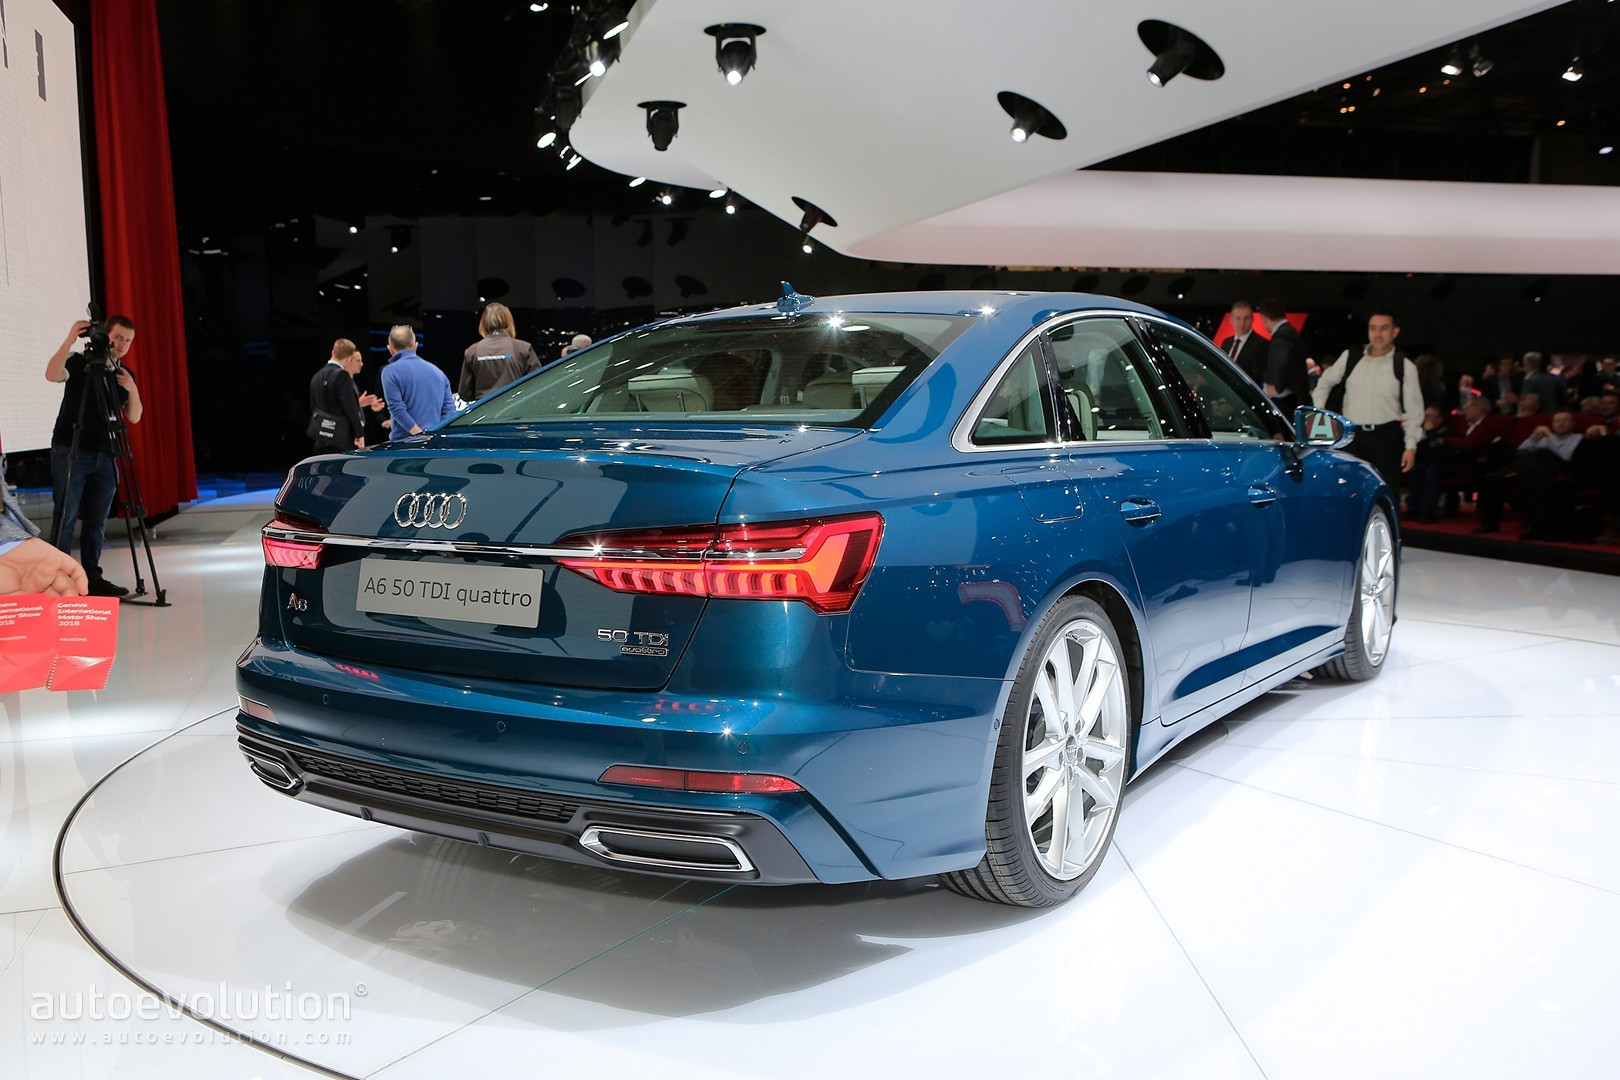 Audi Stops A6 Production on AdBlue Tampering Accusations - autoevolution